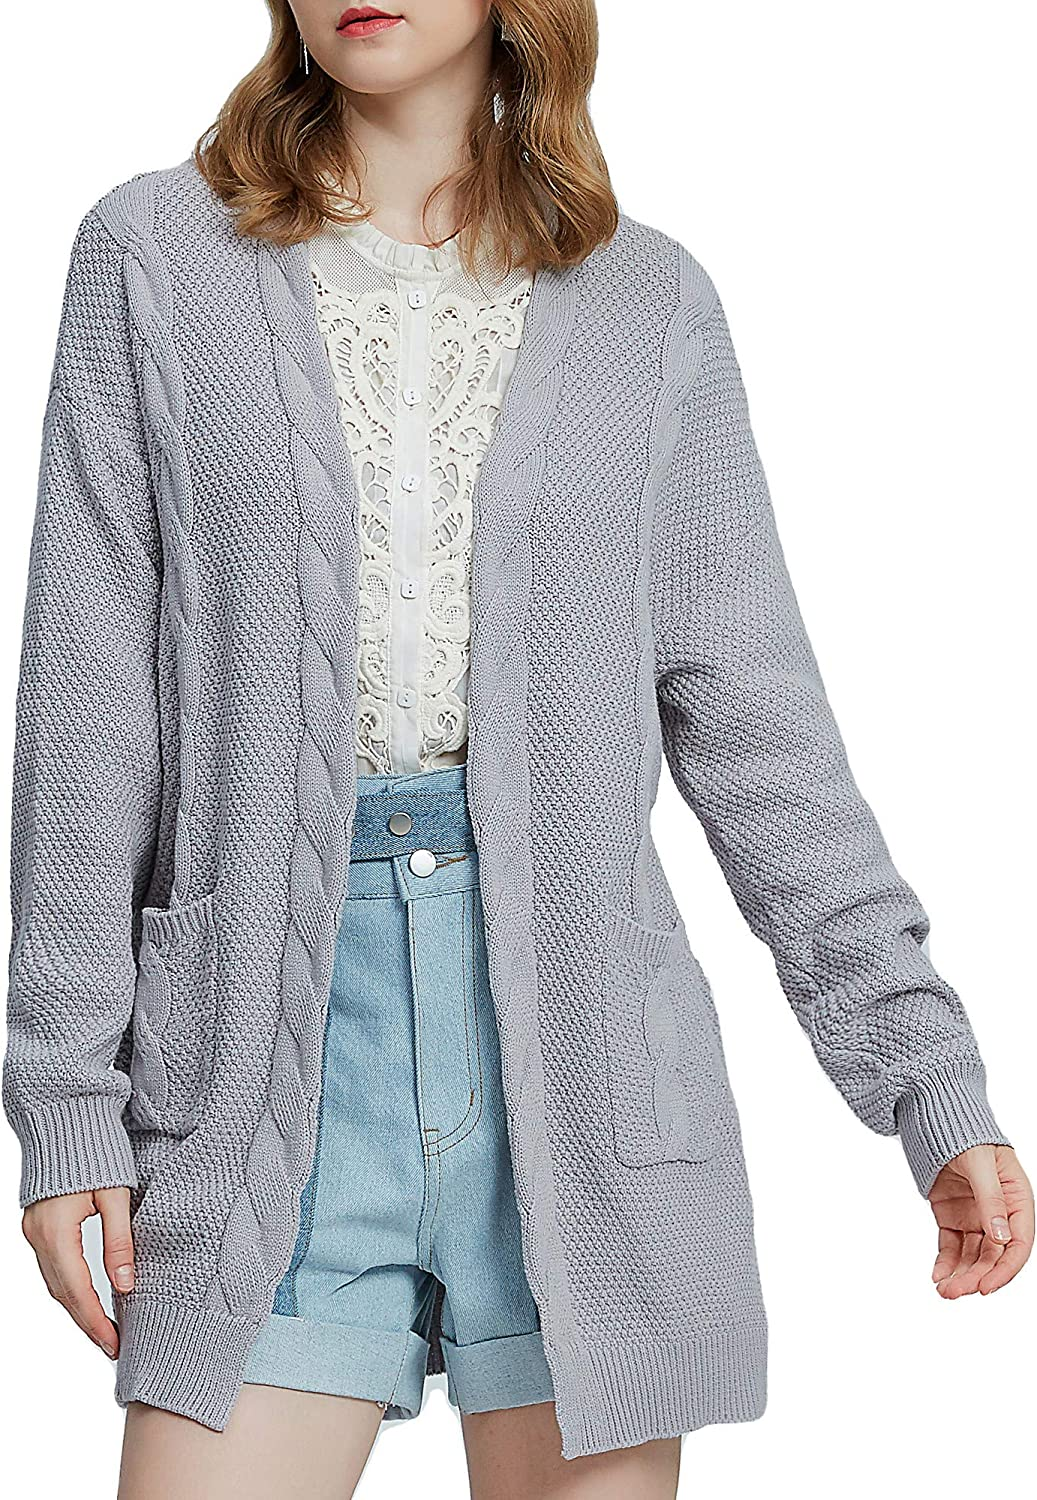 samyama Knit Cardigans for Women Chunky Womens Cardigans with Pockets Sweater